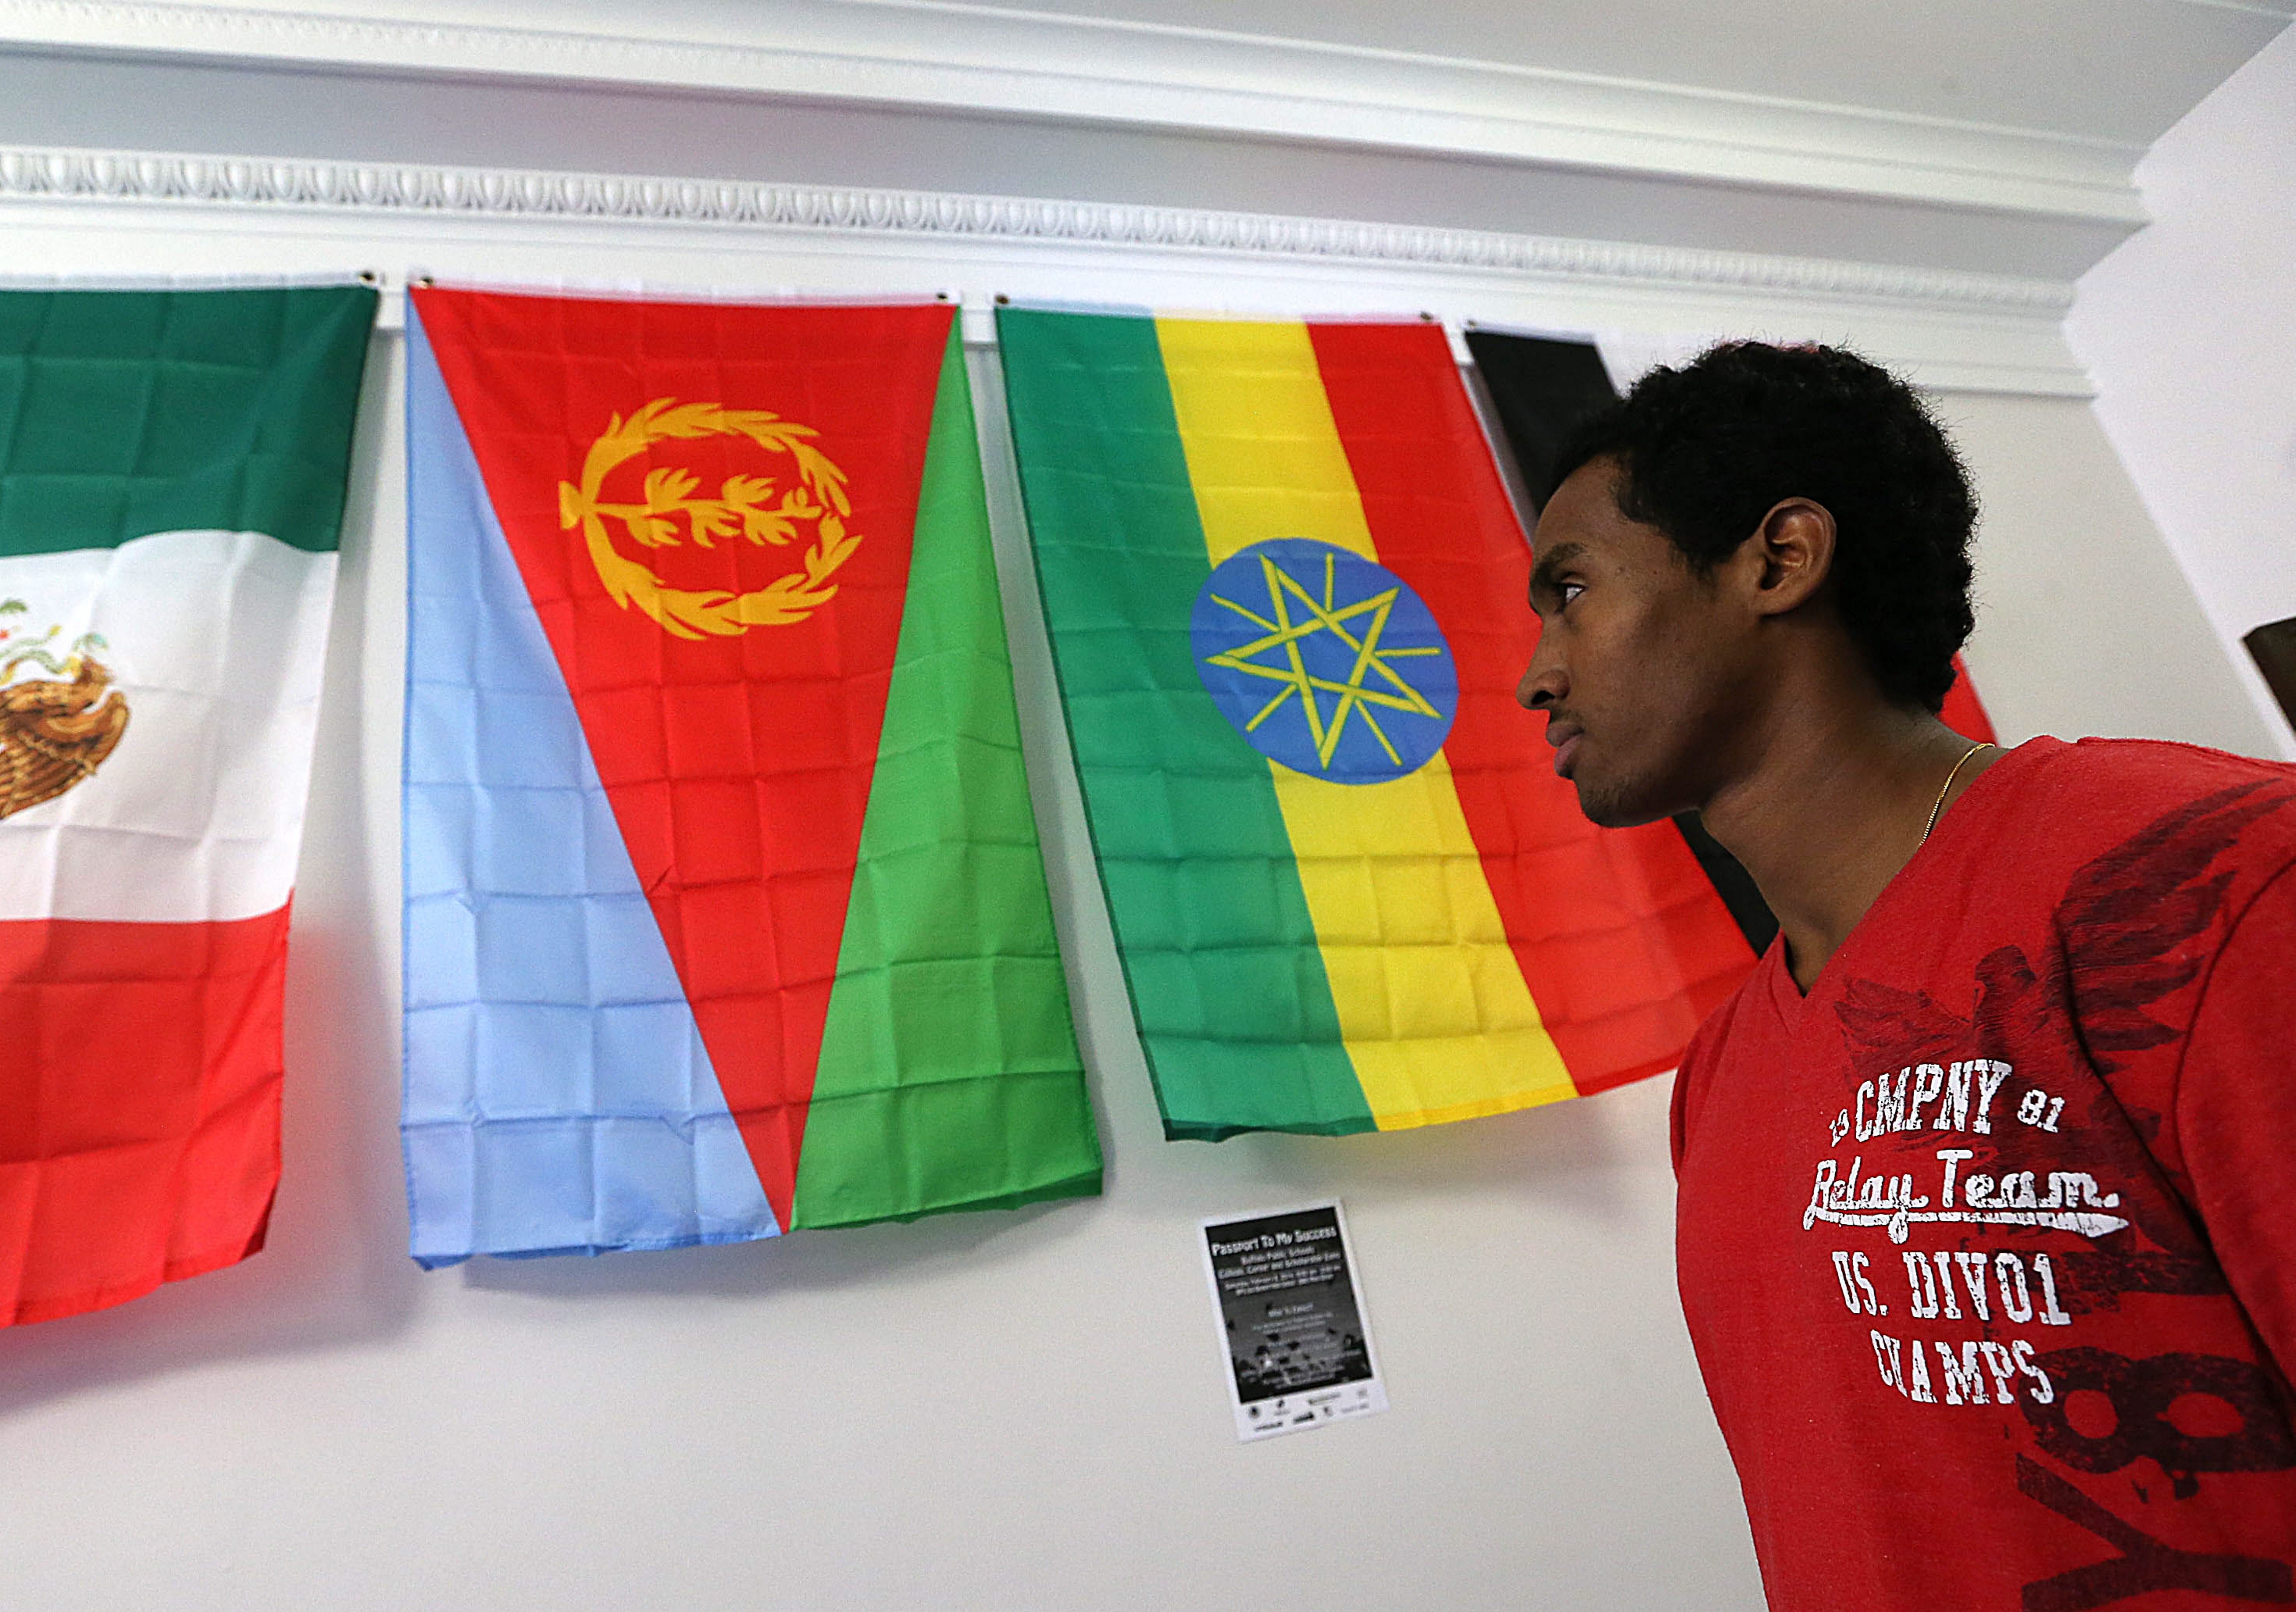 Standing under the flag of his native Eritrea, middle, Ezana Kahsay has seen a lot in his young life.